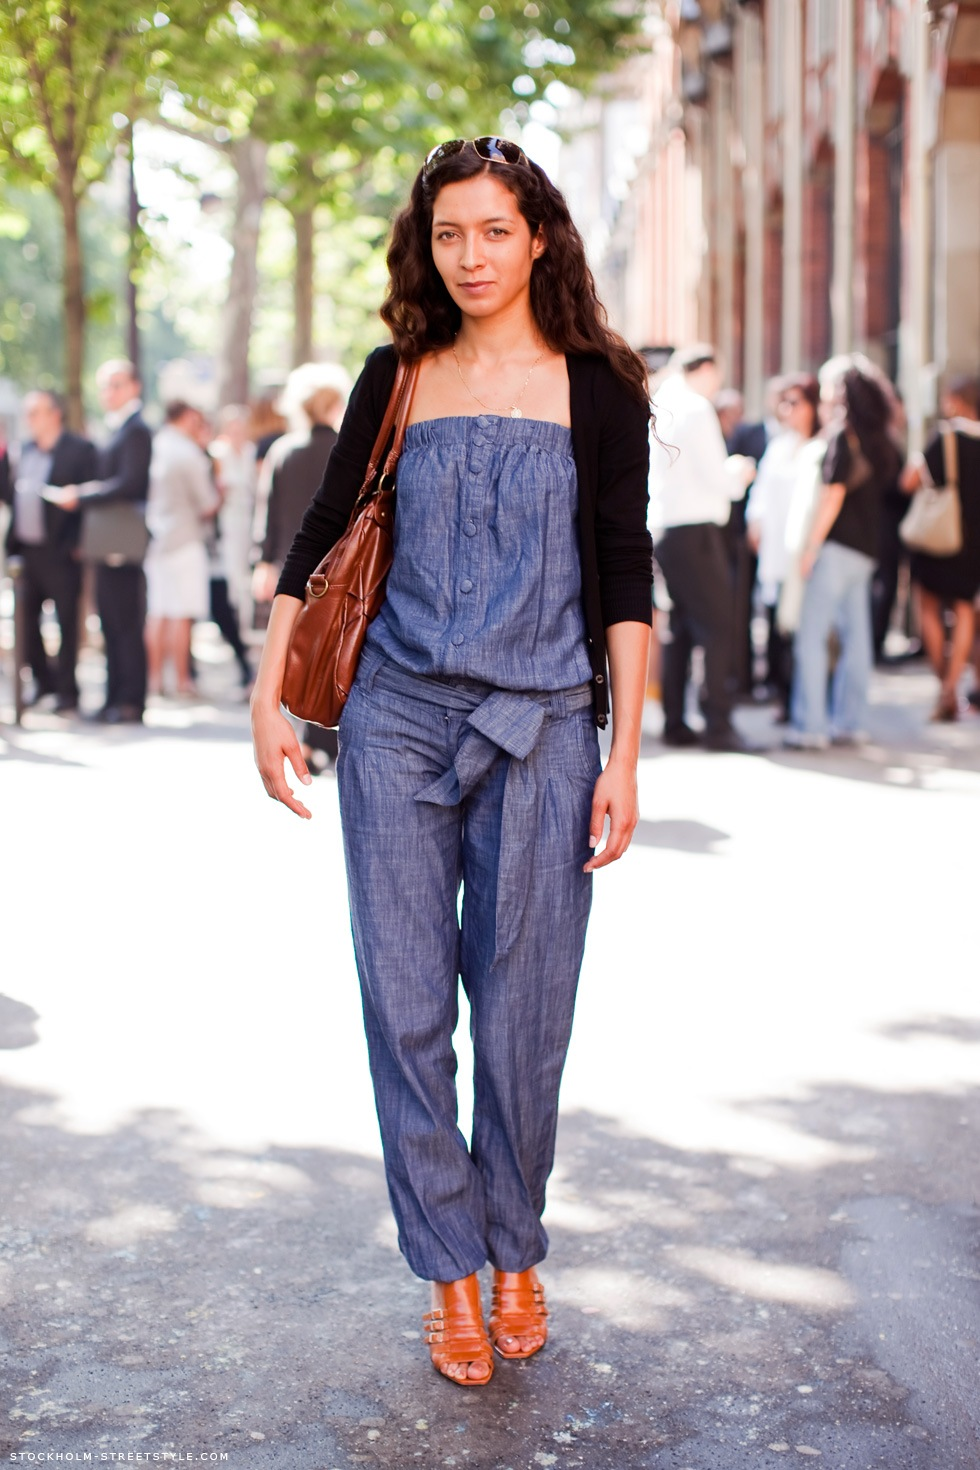 What Do You Think About... Jumpsuits? – The Fashion Tag Blog